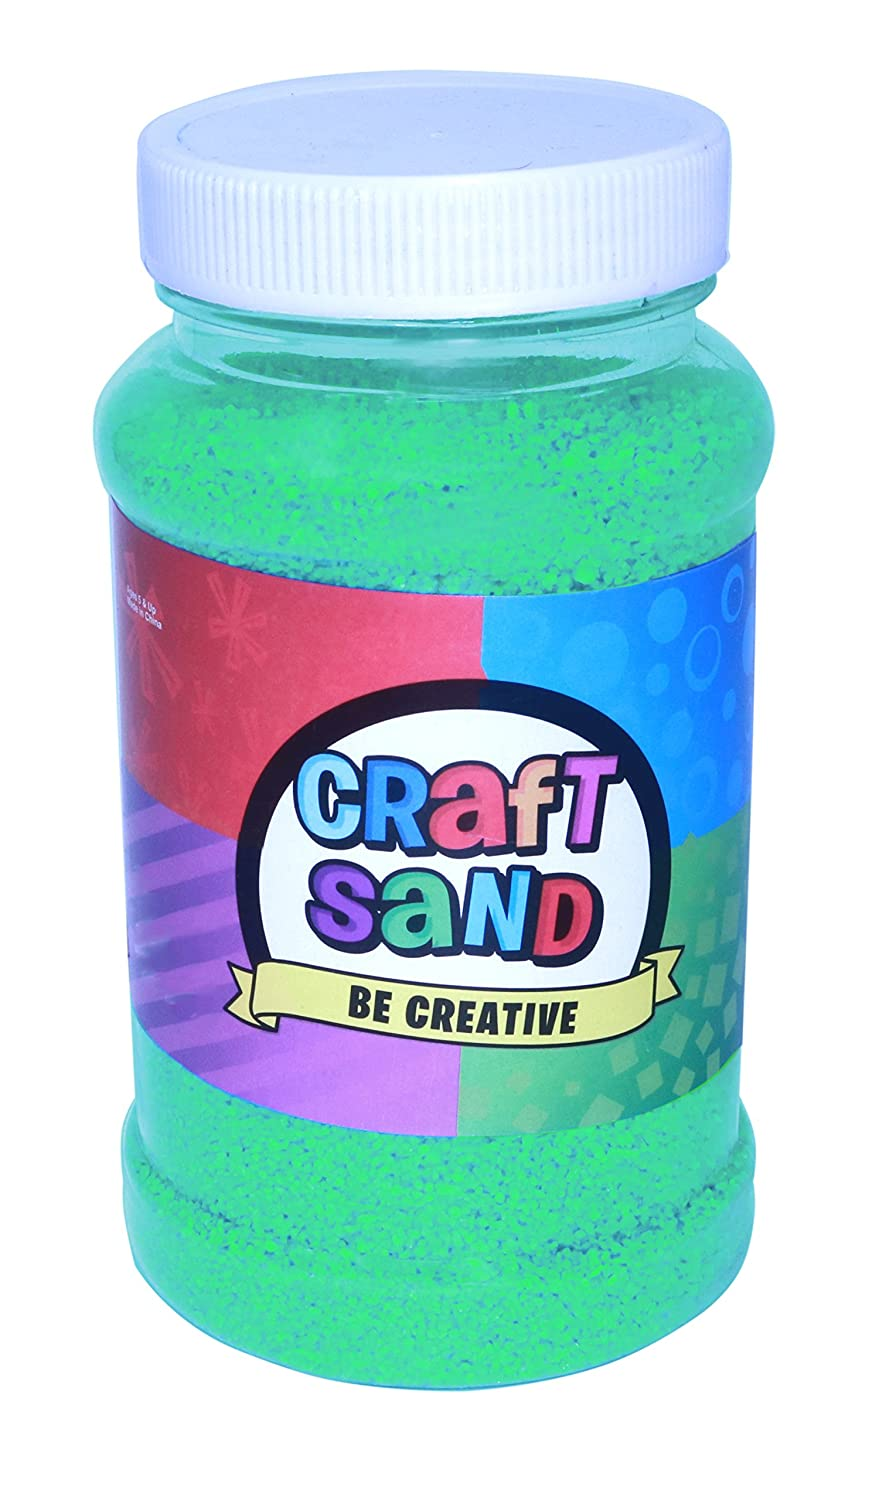 (Green) - Colourful Craft Sand - Choose A Colour Black, Blue, Orange, Pink, Green, Purple, Red, White (Green) B073X13TS7 グリーン